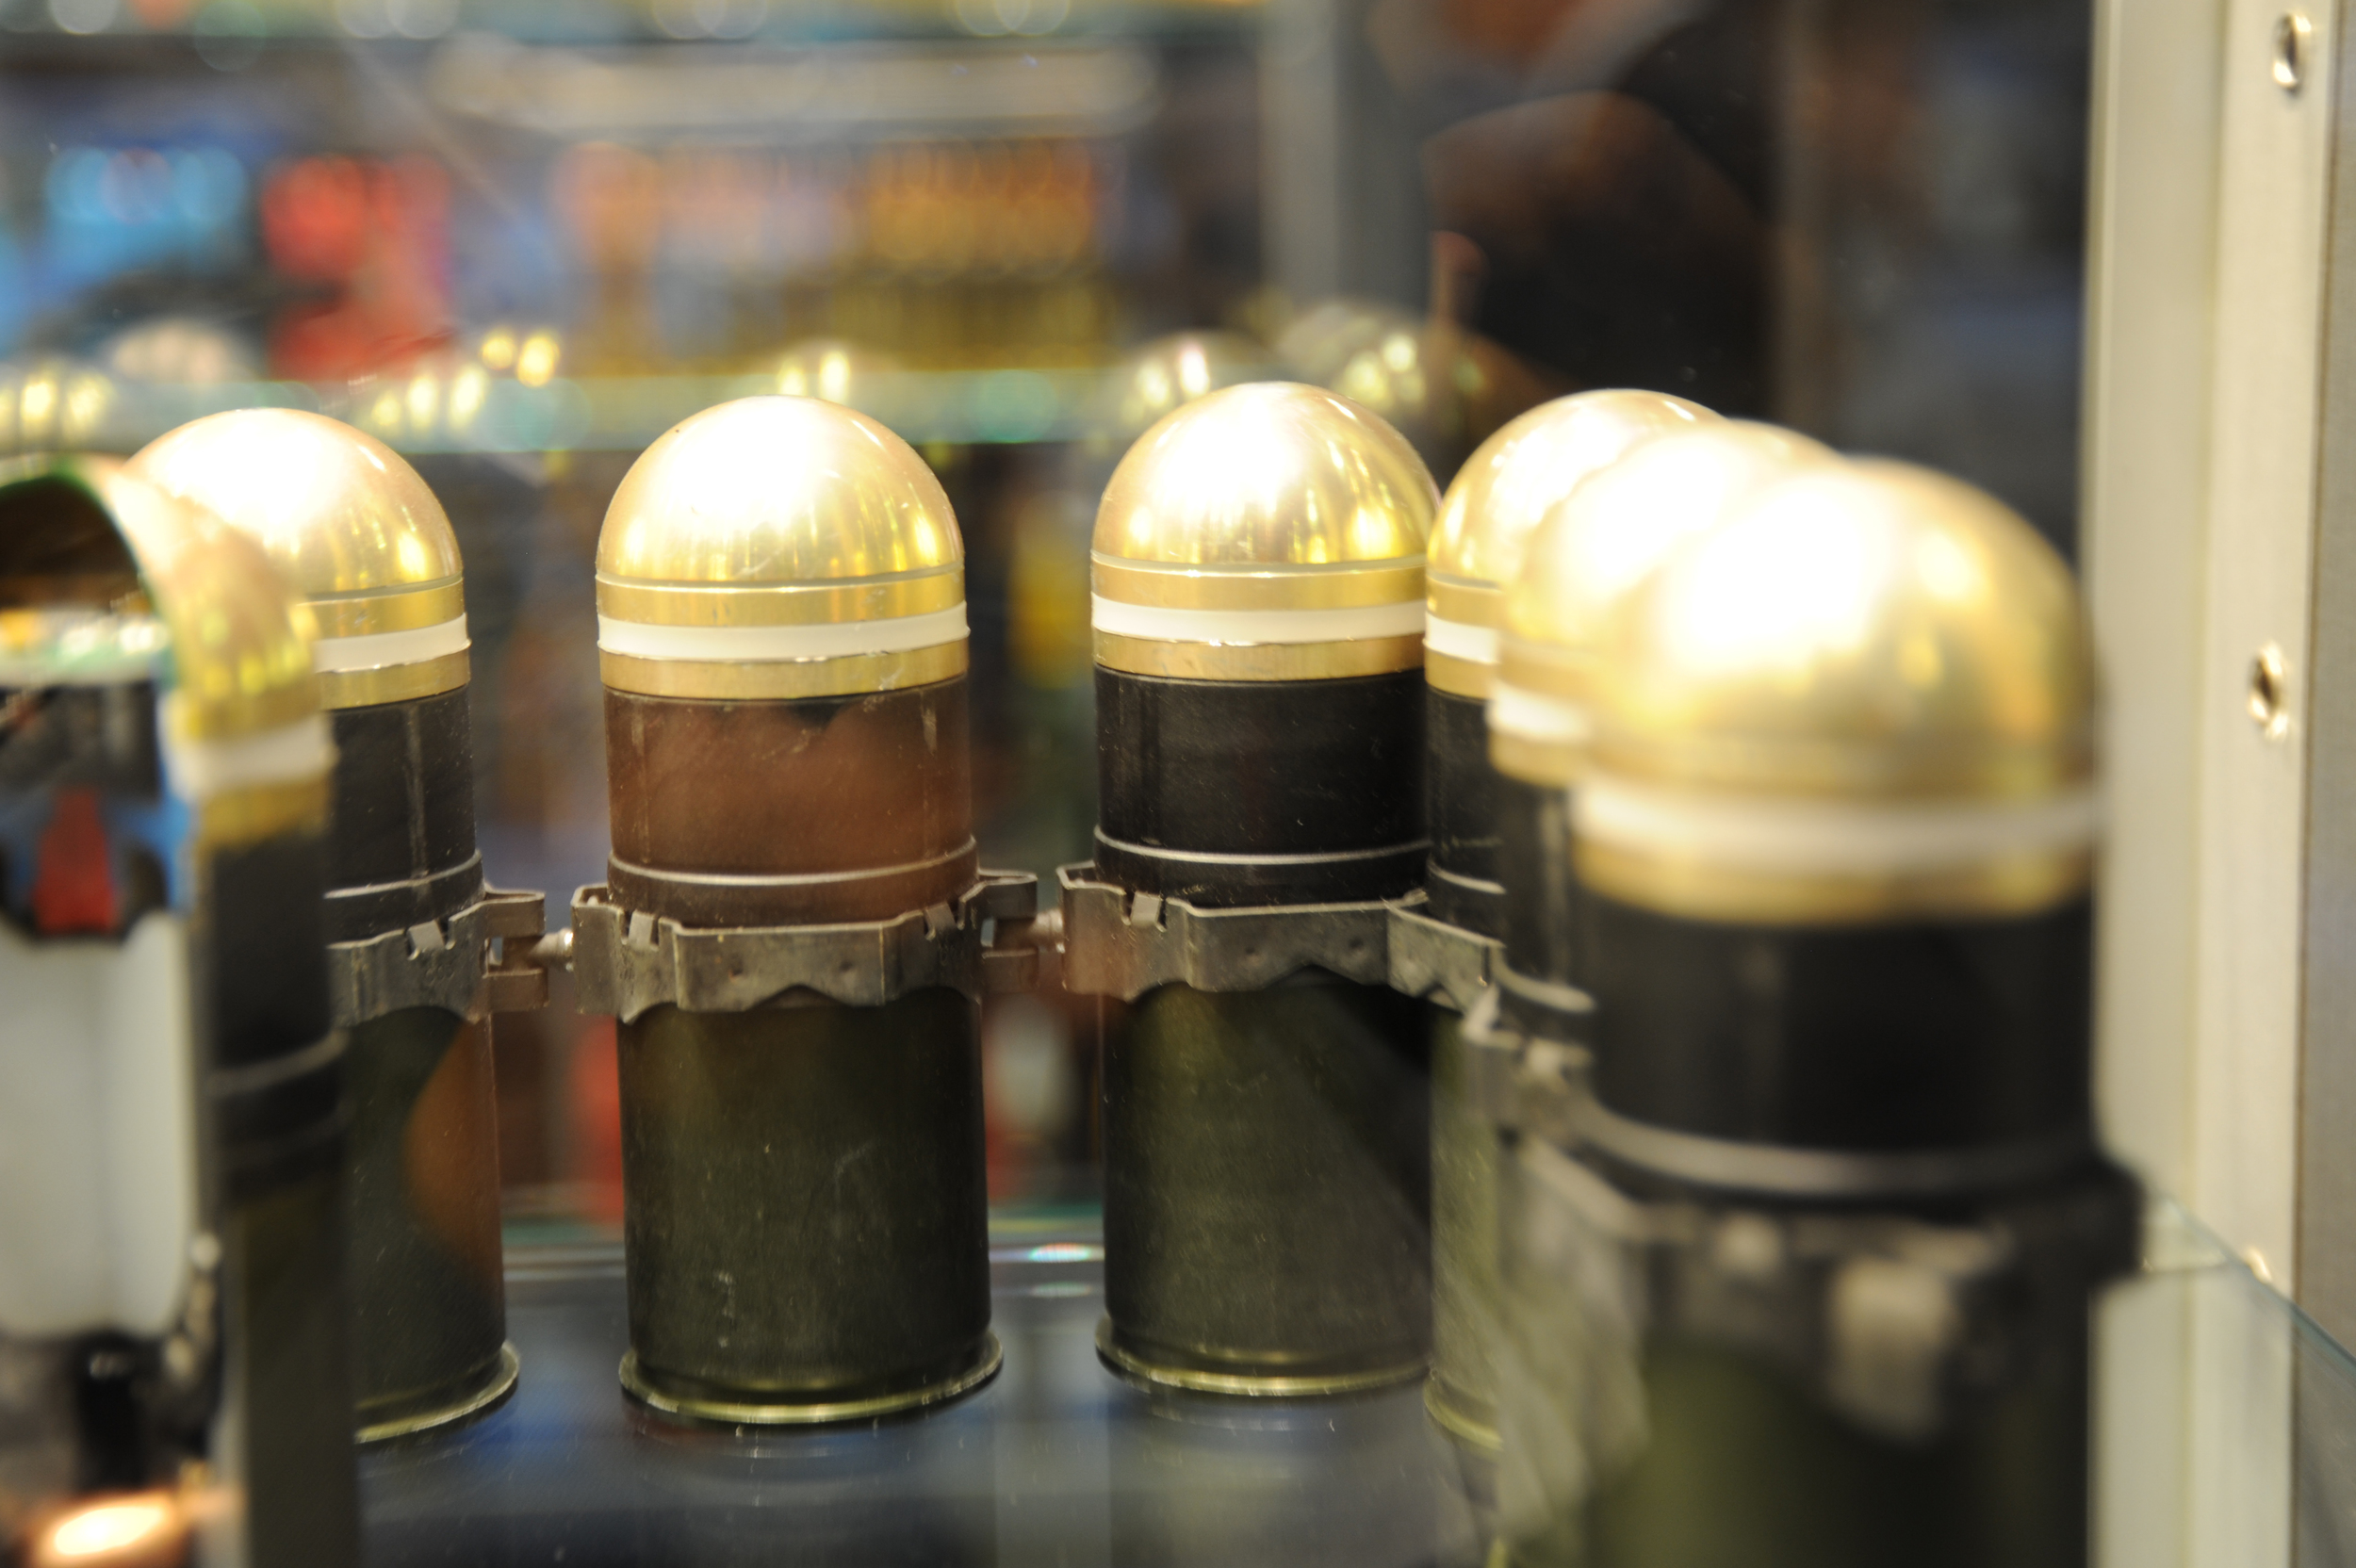 Munitions are the backbone of armies worldwide. The Canadian Armed Forces is embarking on a plan to acquire new weapons and munitions over the next decade. (david pugliese)